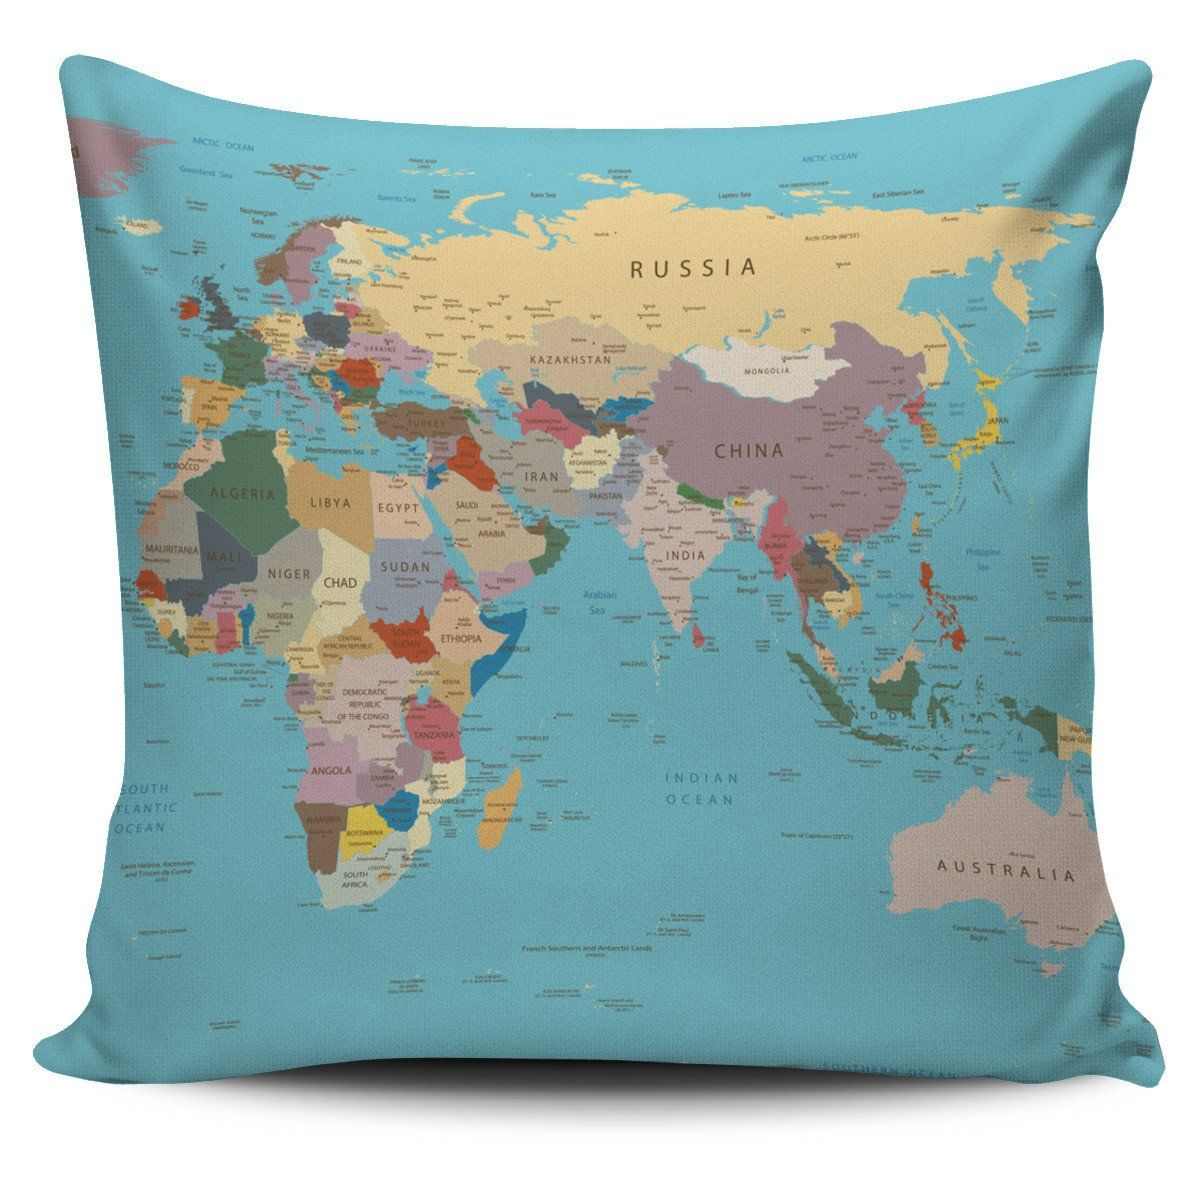 6 star master bedroom  World Map Pillow Cover  Products  Pinterest  Pillows and Products